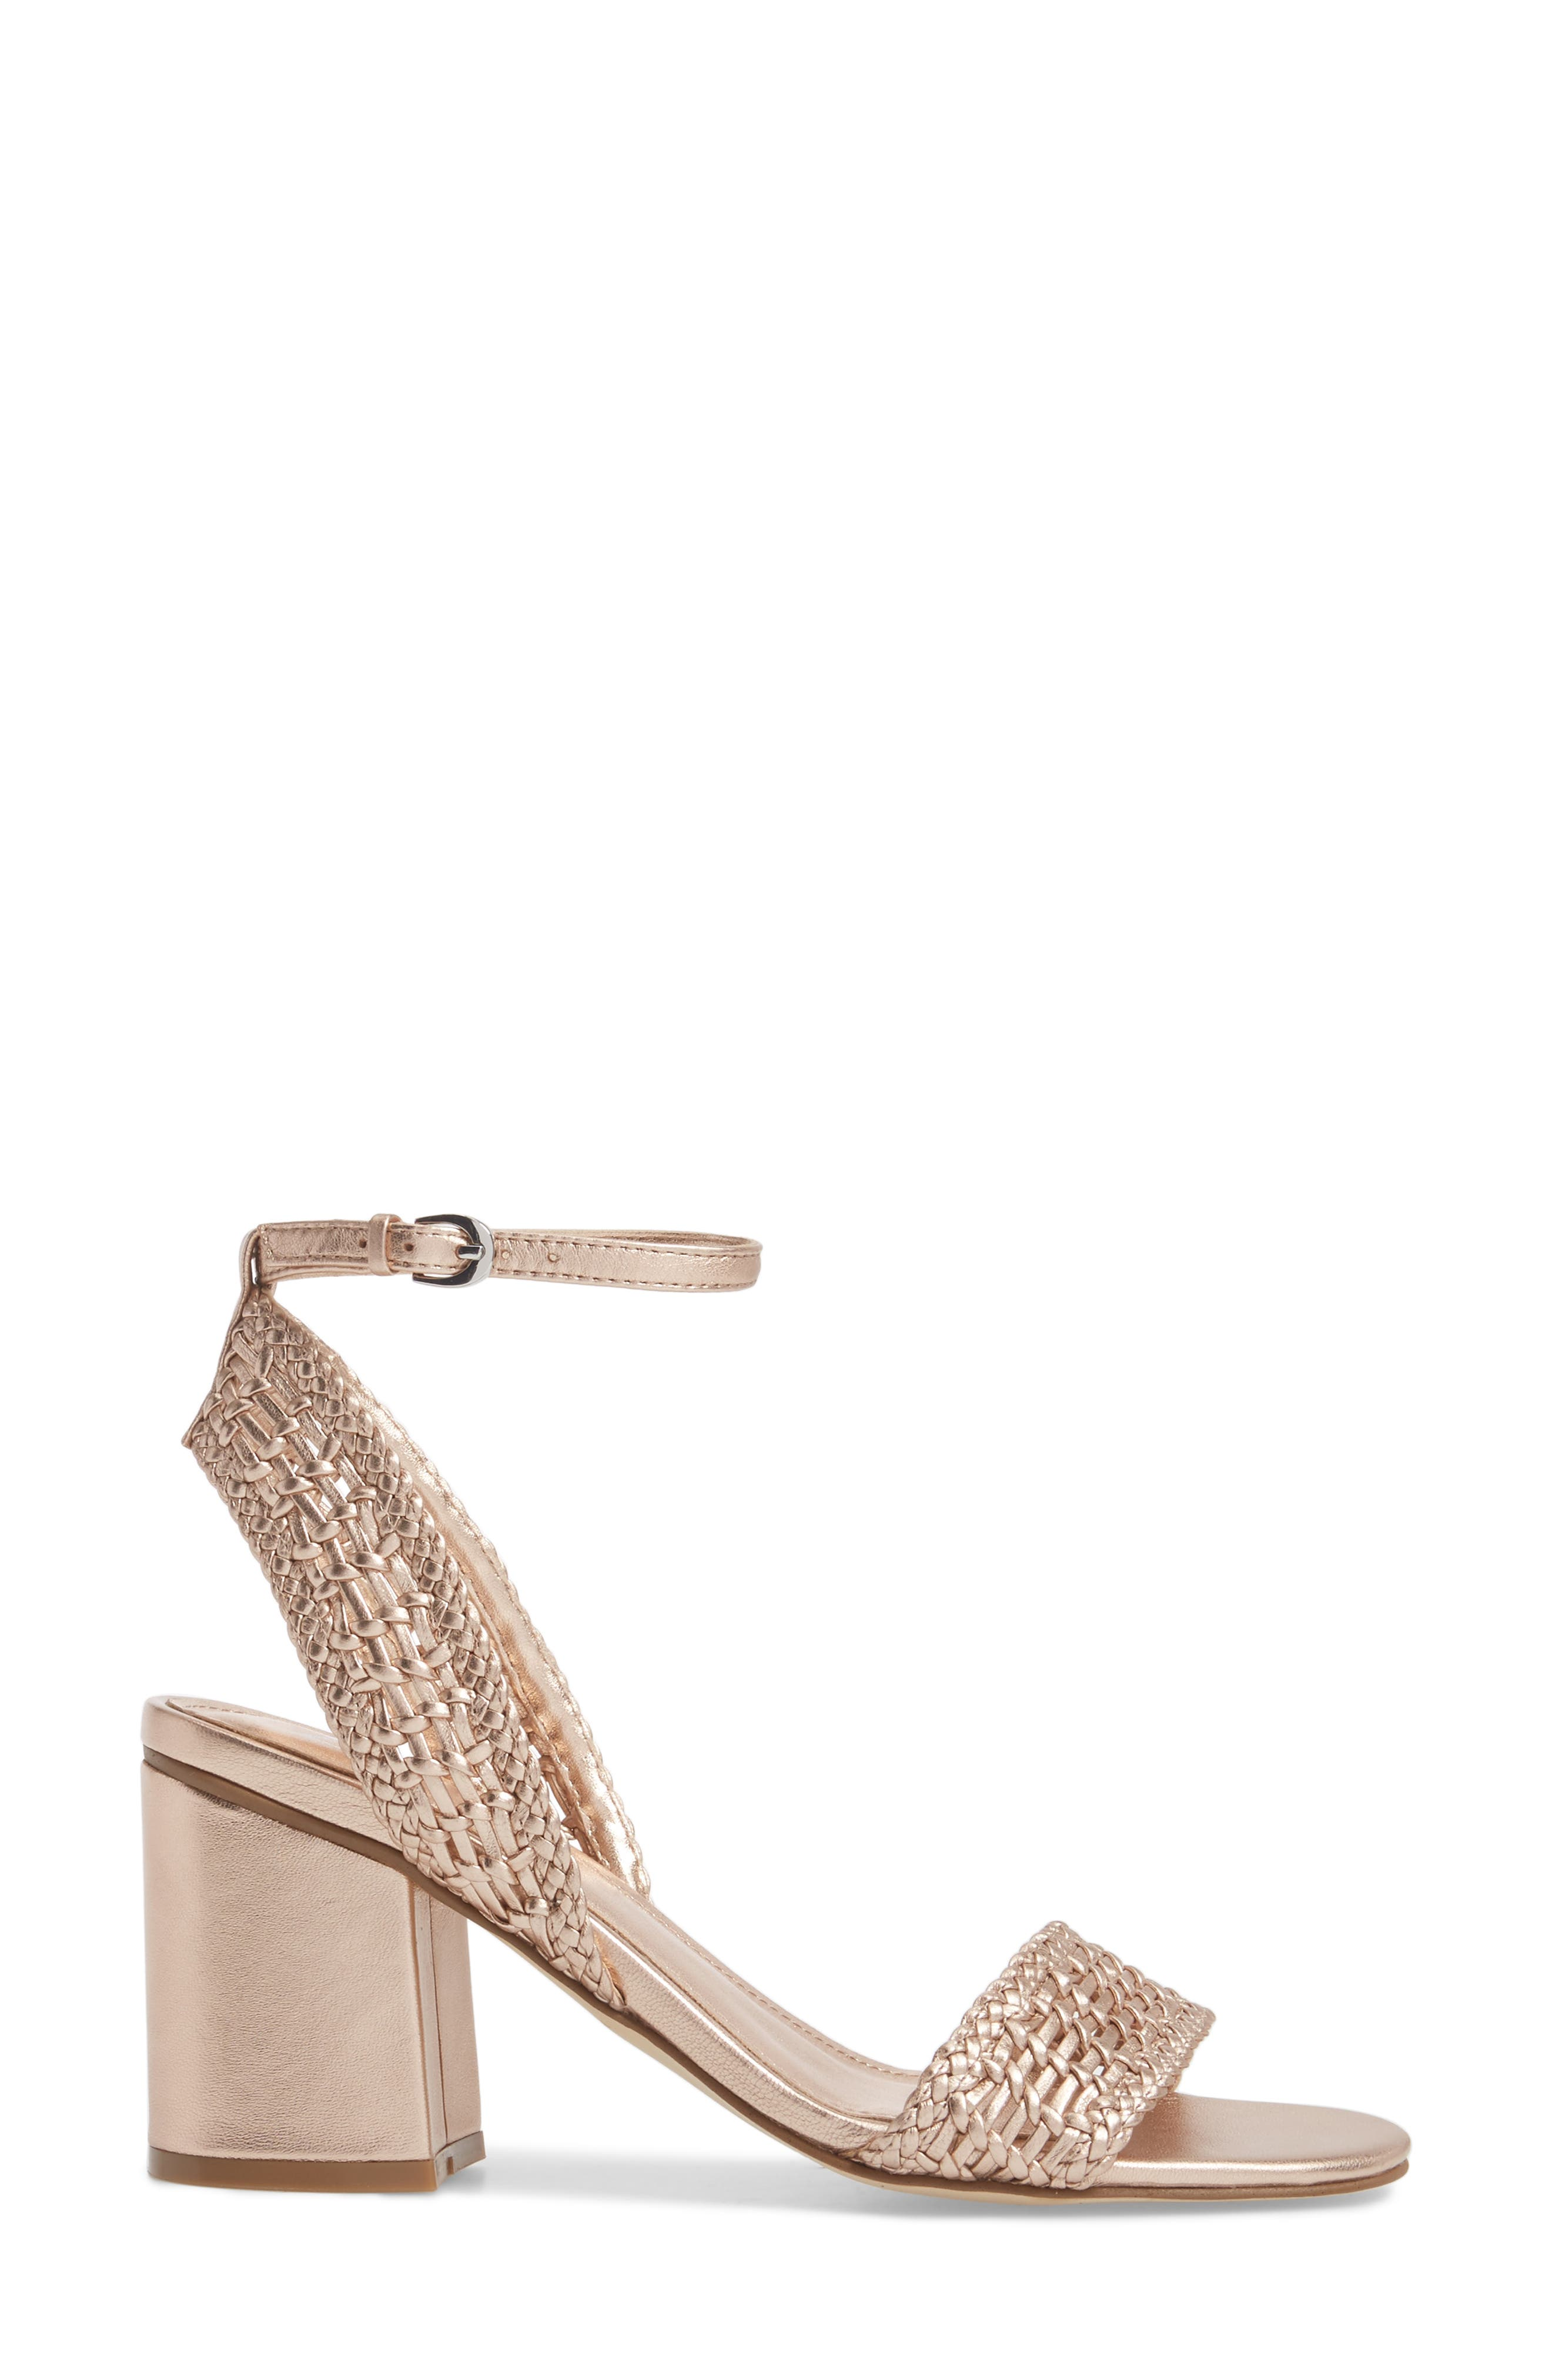 Alternate Image 3  - Marc Fisher LTD Amere Ankle Strap Sandal (Women)